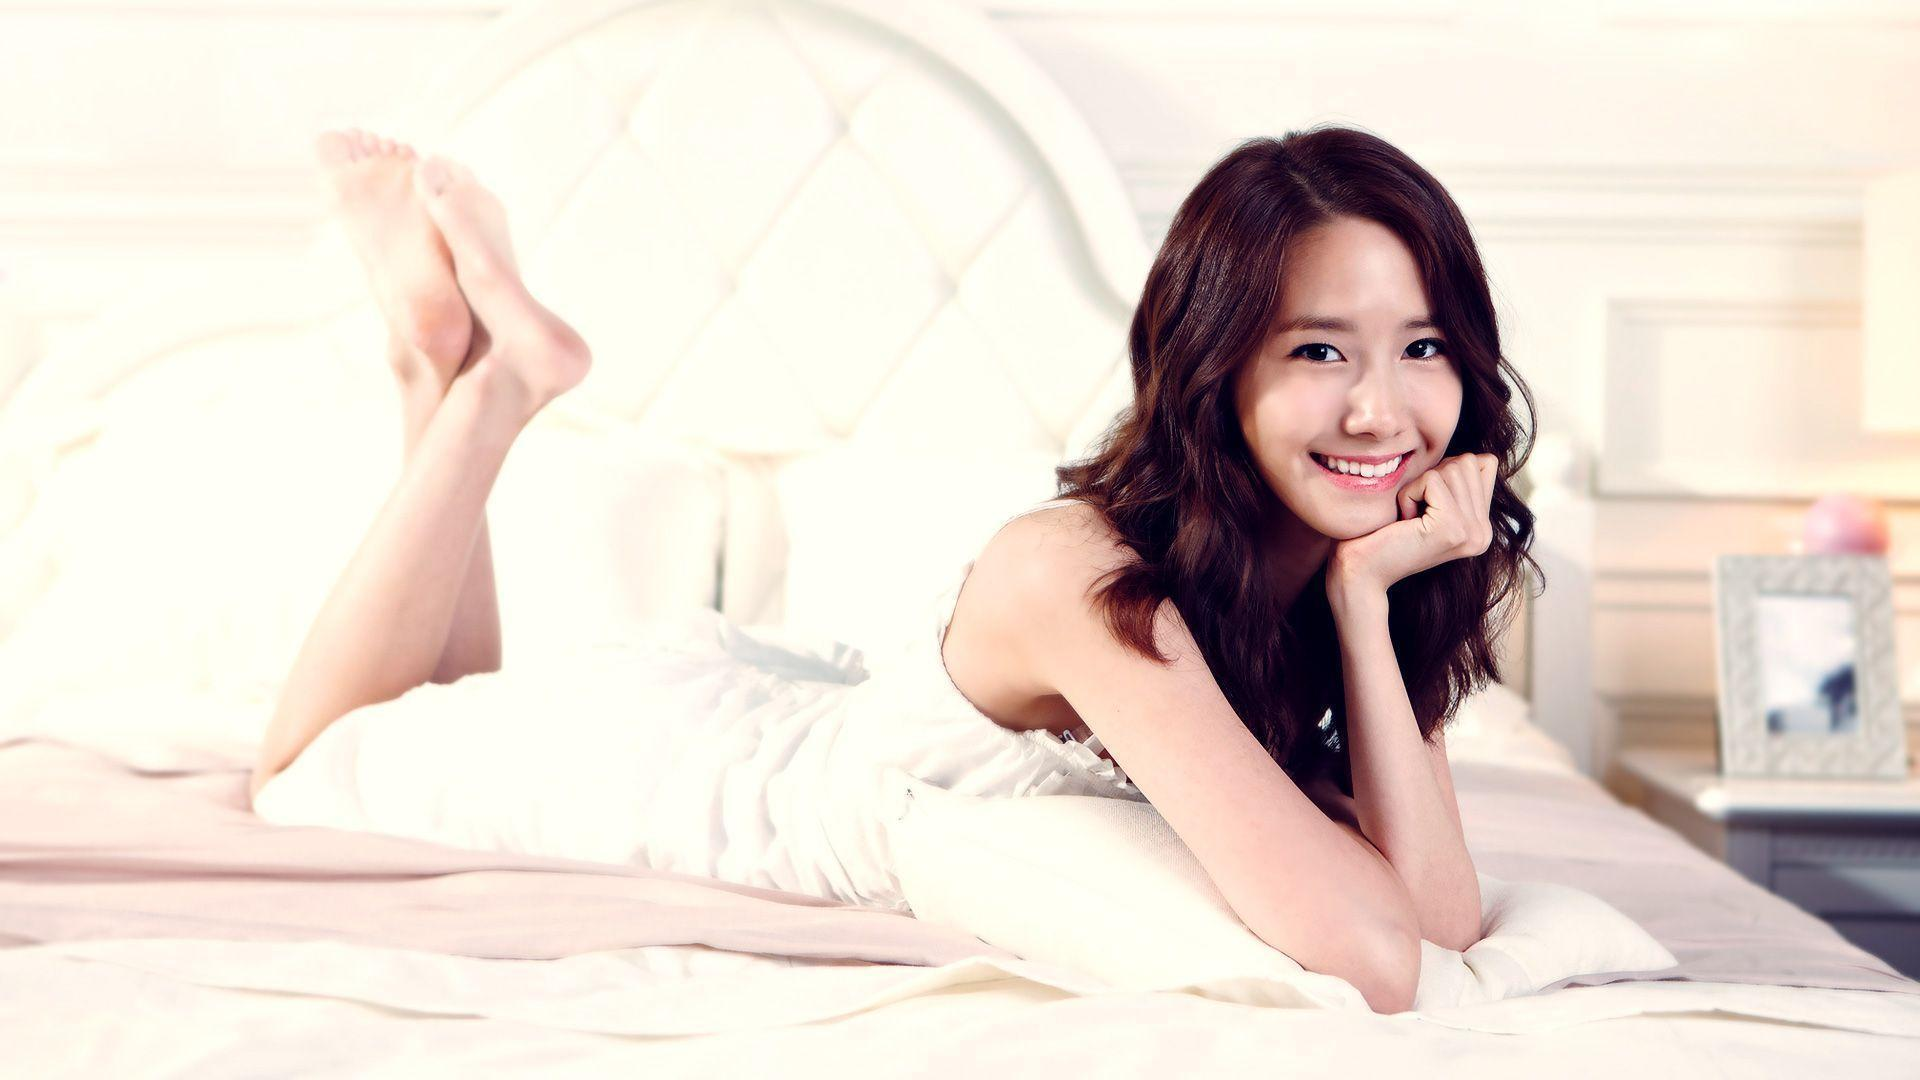 yoona snsd wallpapers minus 1920x1080px kpop iphone 5 wallpapers